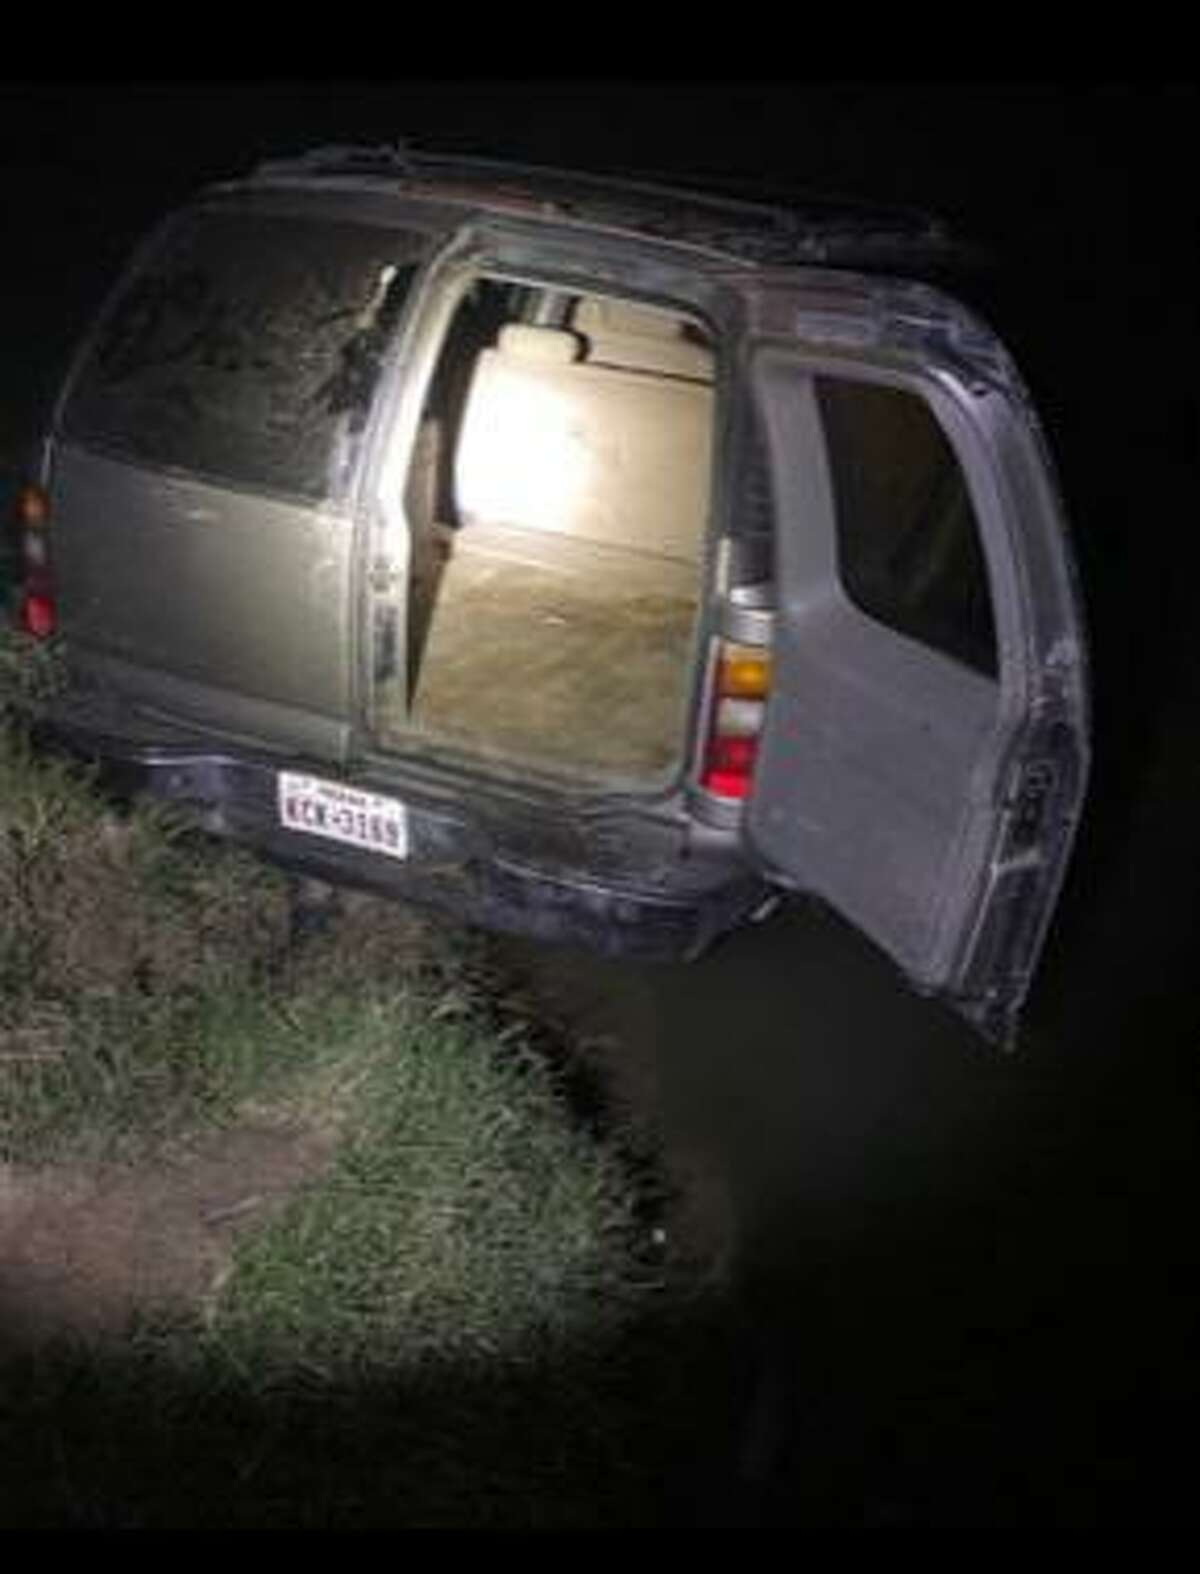 U.S. Border Patrol said this vehicle eluded apprehension and then drove into the Rio Grande. Authorities discovered 300.16 pounds that had an estimated street value of $240,124.